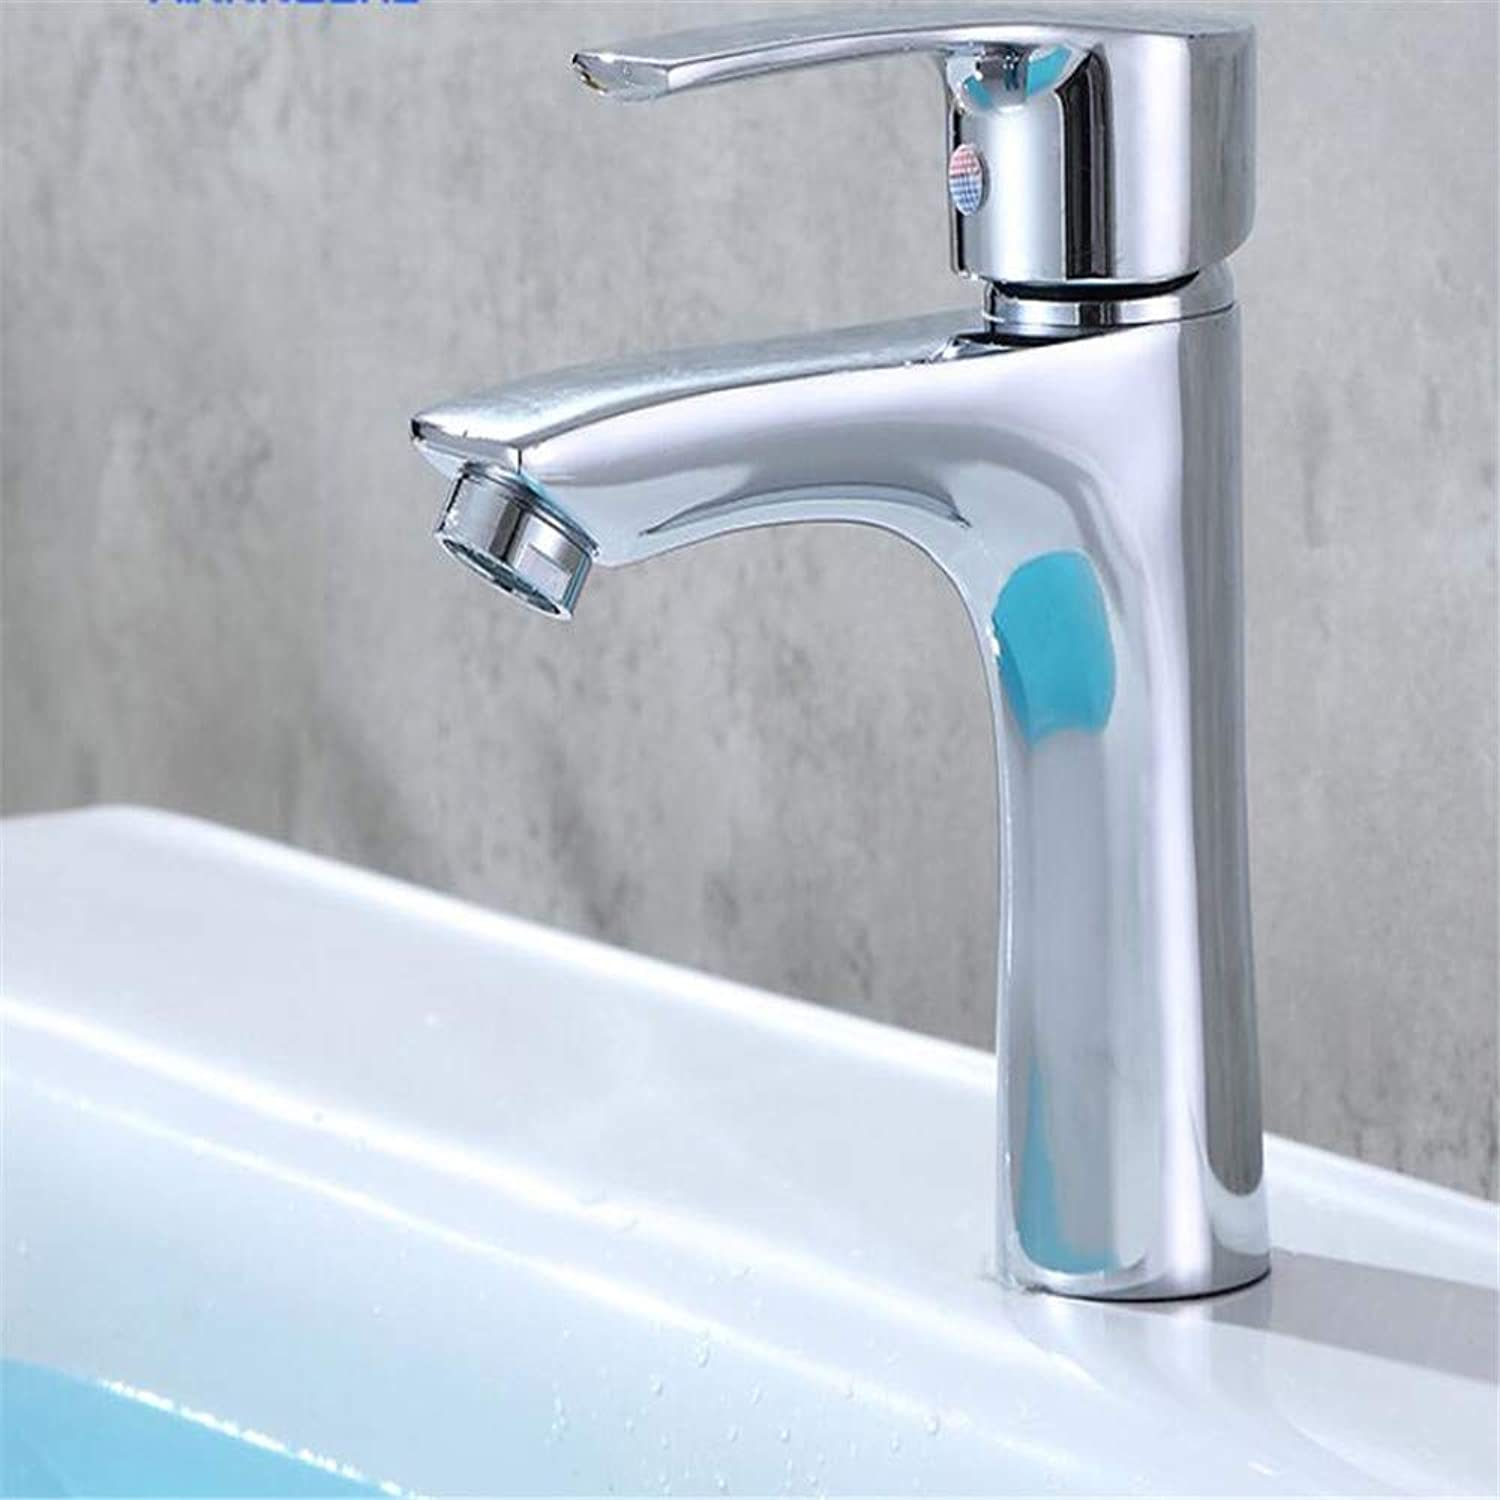 Basin Mixer Tap High-Standard Basin Faucet Hot and Cold Water Single Hole